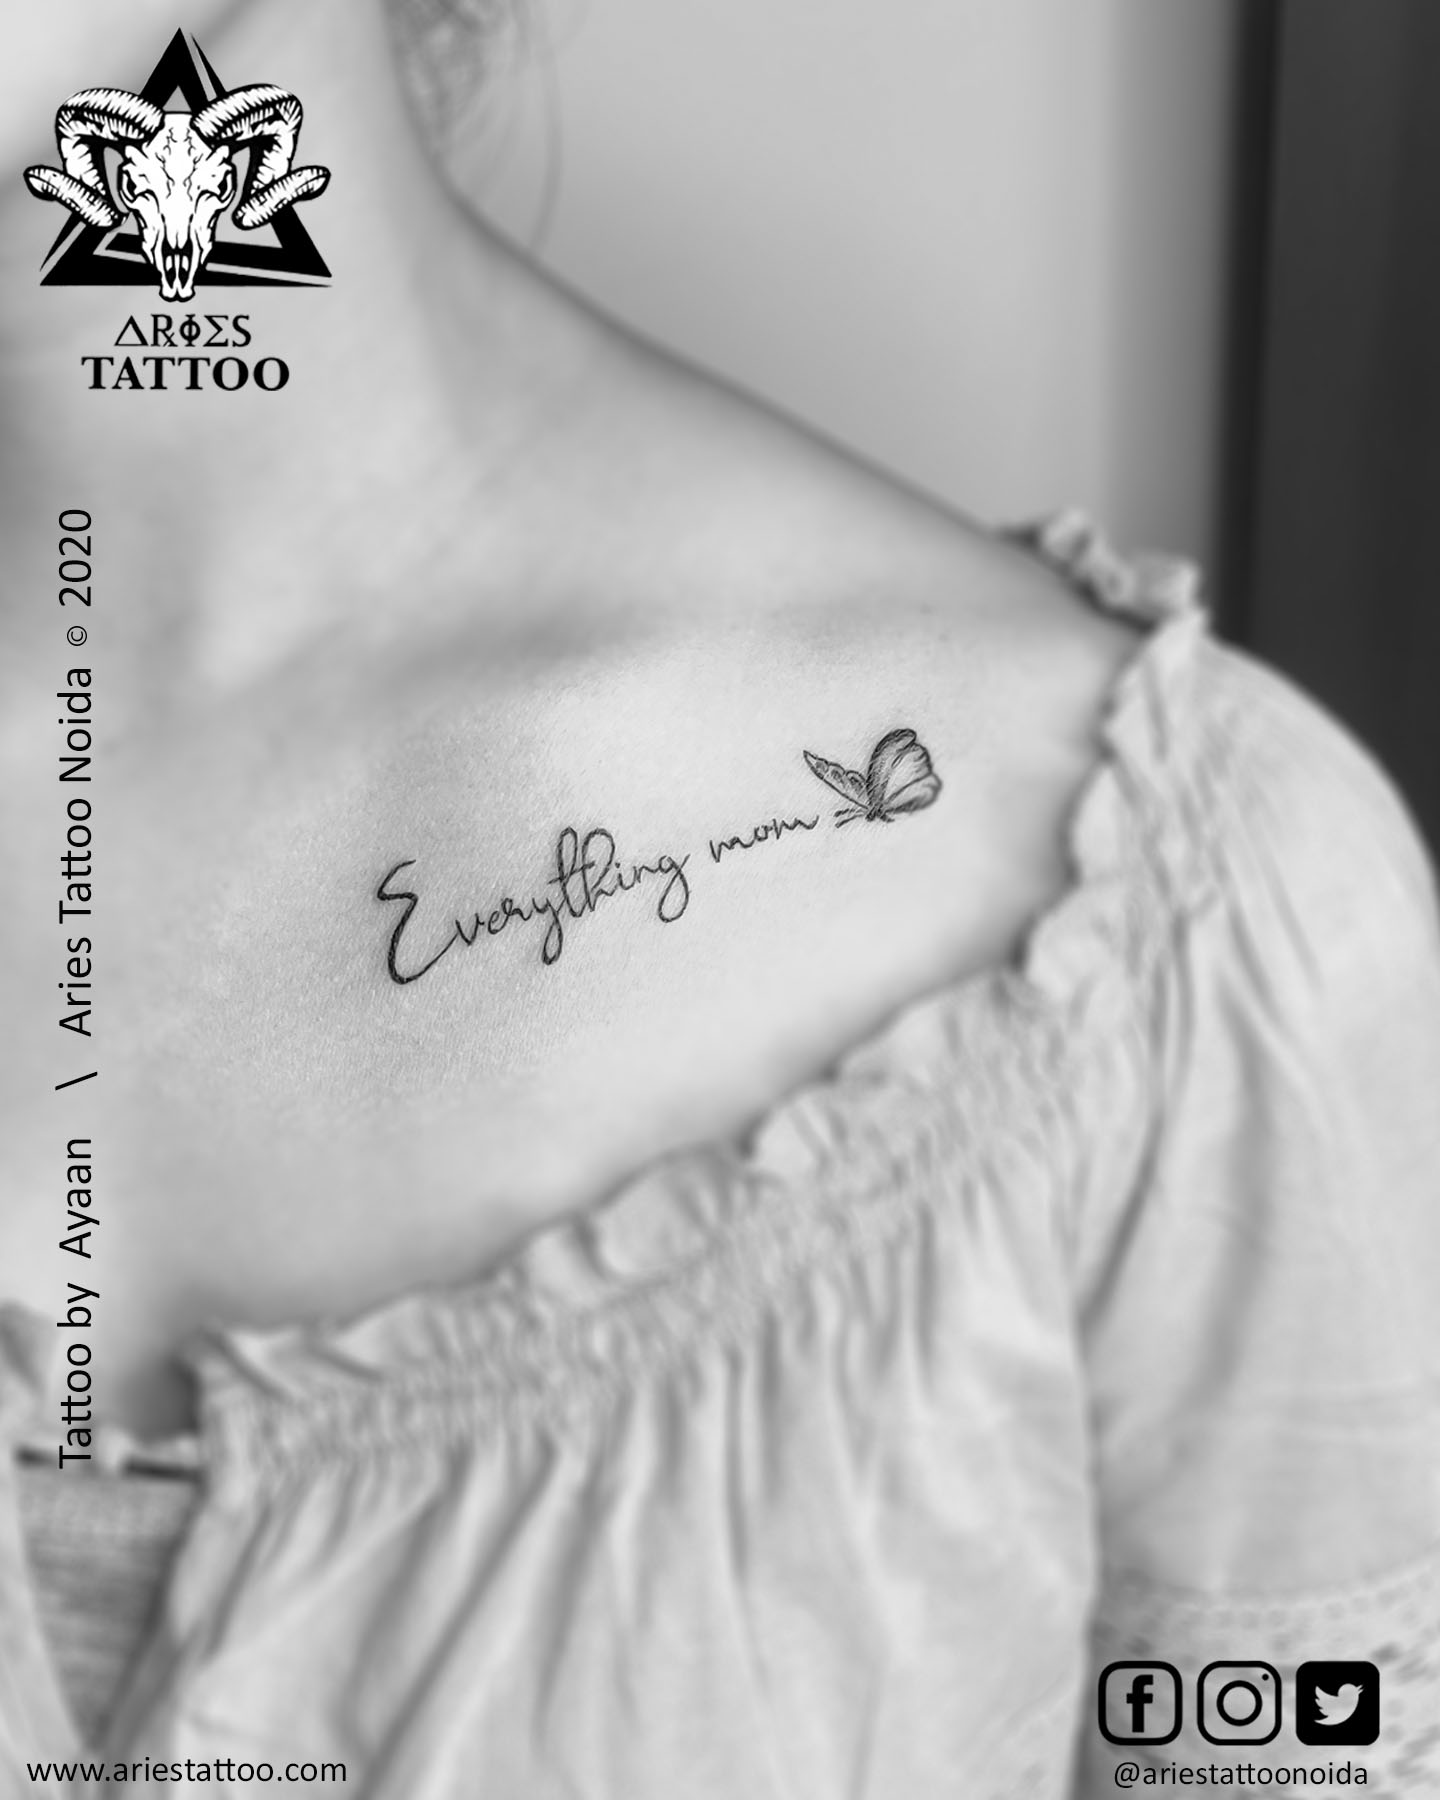 scrip ttattoo_ayaan_ariestattoonoida | |Aries Tattoo Noida | Tattoo Shop and Studio In Noida